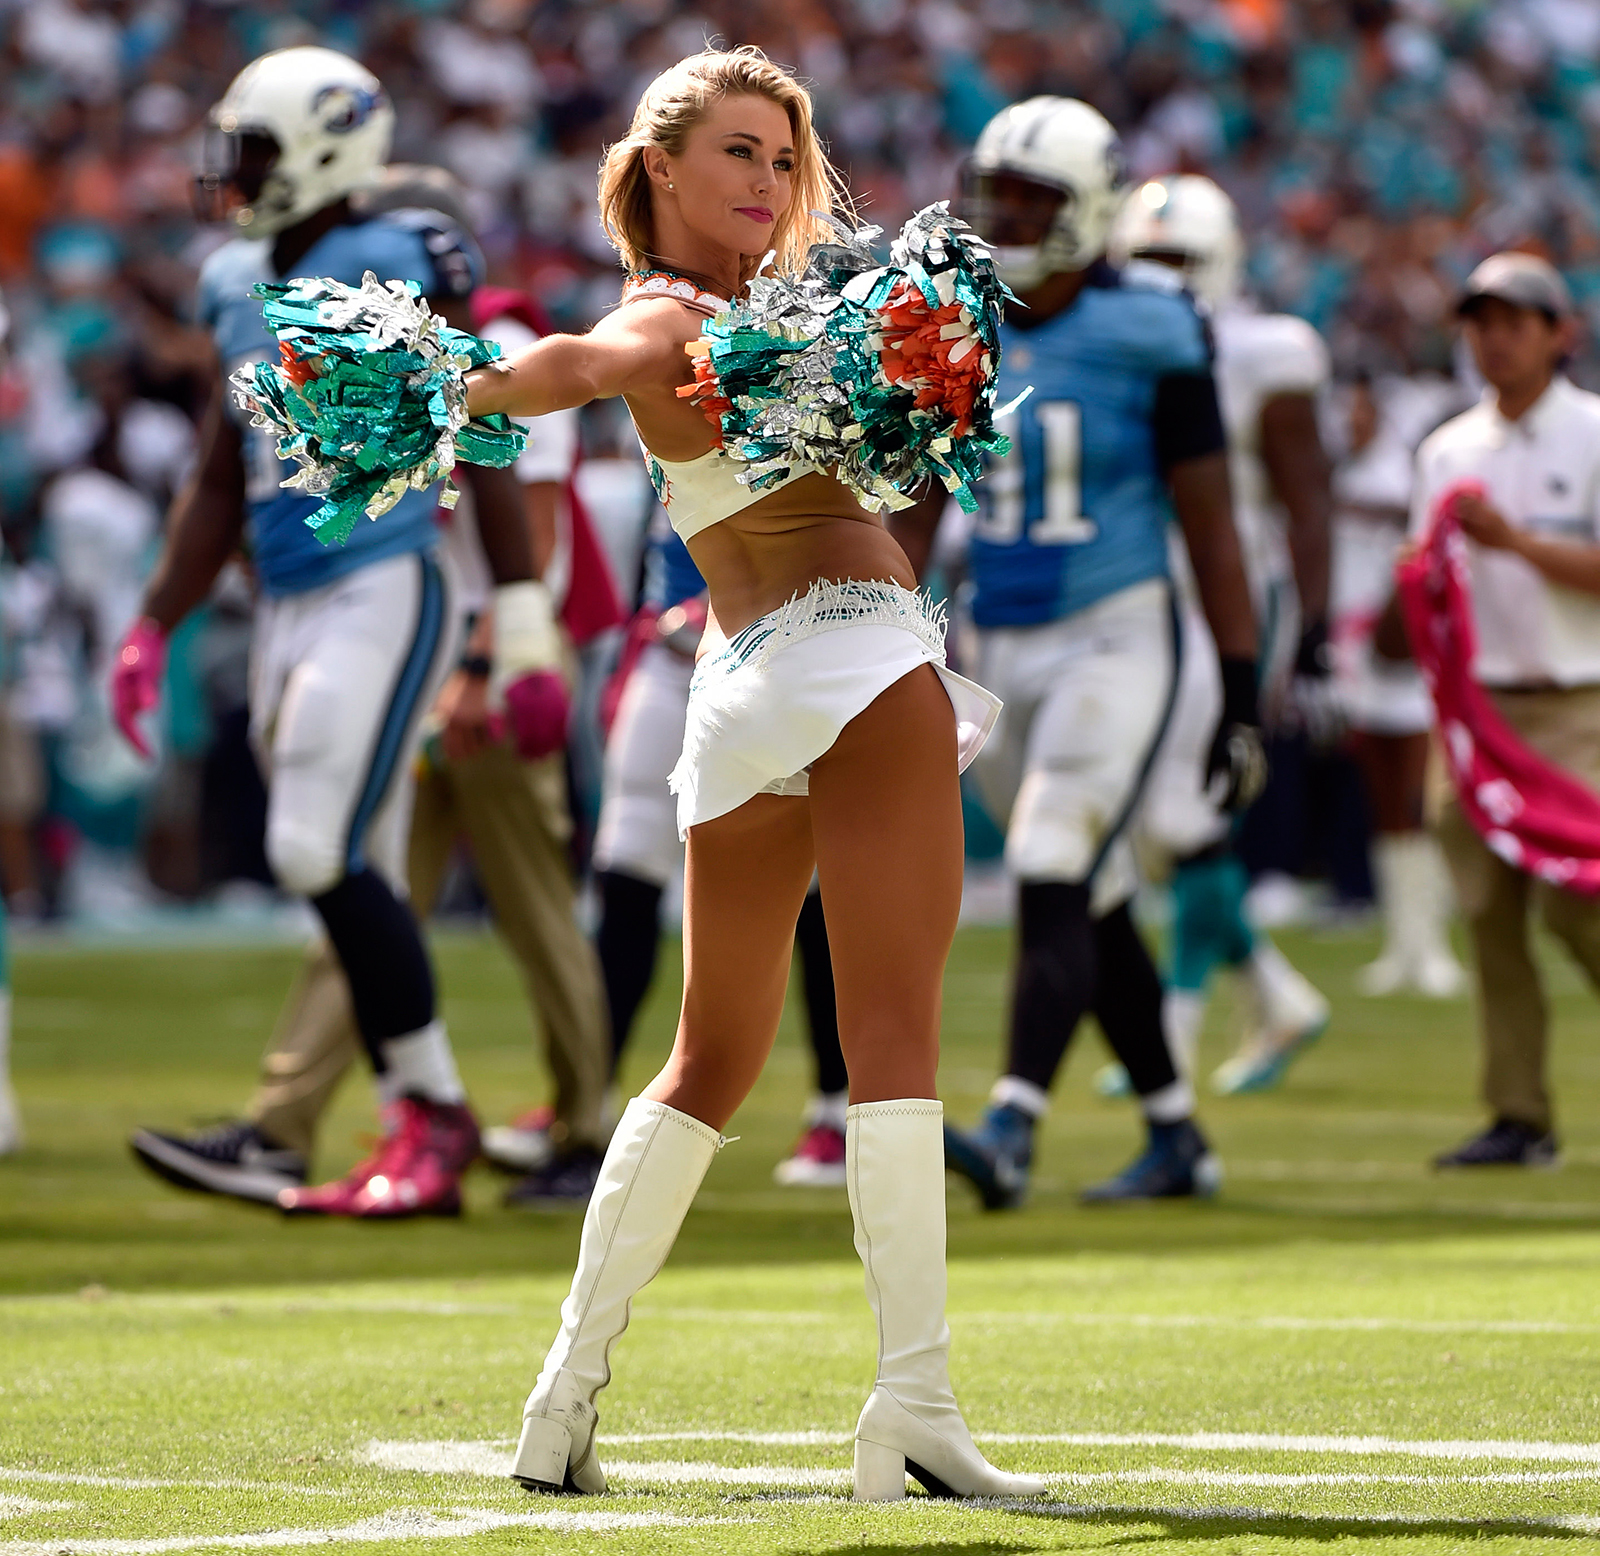 Oct 9, 2016; Miami Gardens, FL, USA; Miami Dolphins cheerleader performs during the second half against the Tennessee Titans at Hard Rock Stadium. Titans won 30-17. Mandatory Credit: Steve Mitchell-USA TODAY Sports